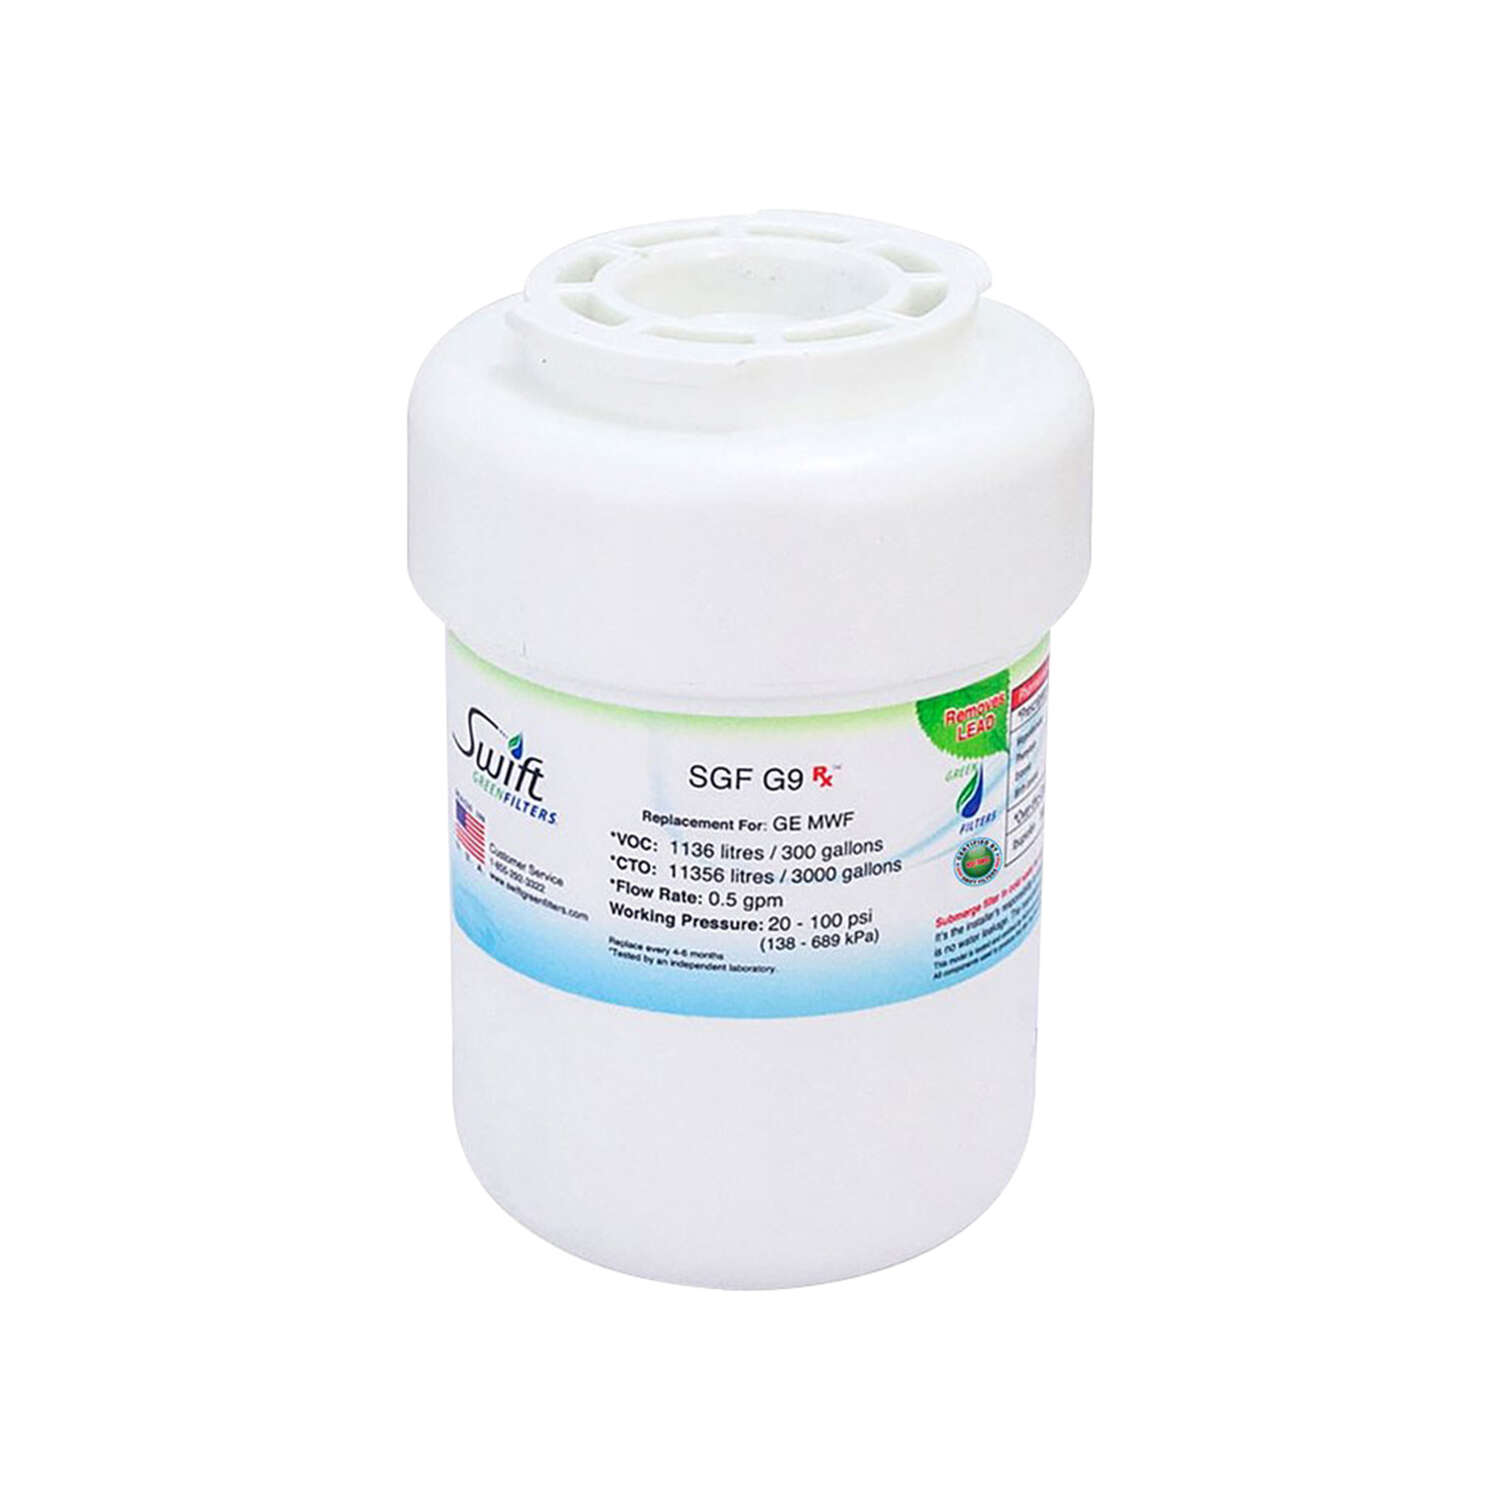 Swift Green Filters Refrigerator Replacement Filter For GE MWF